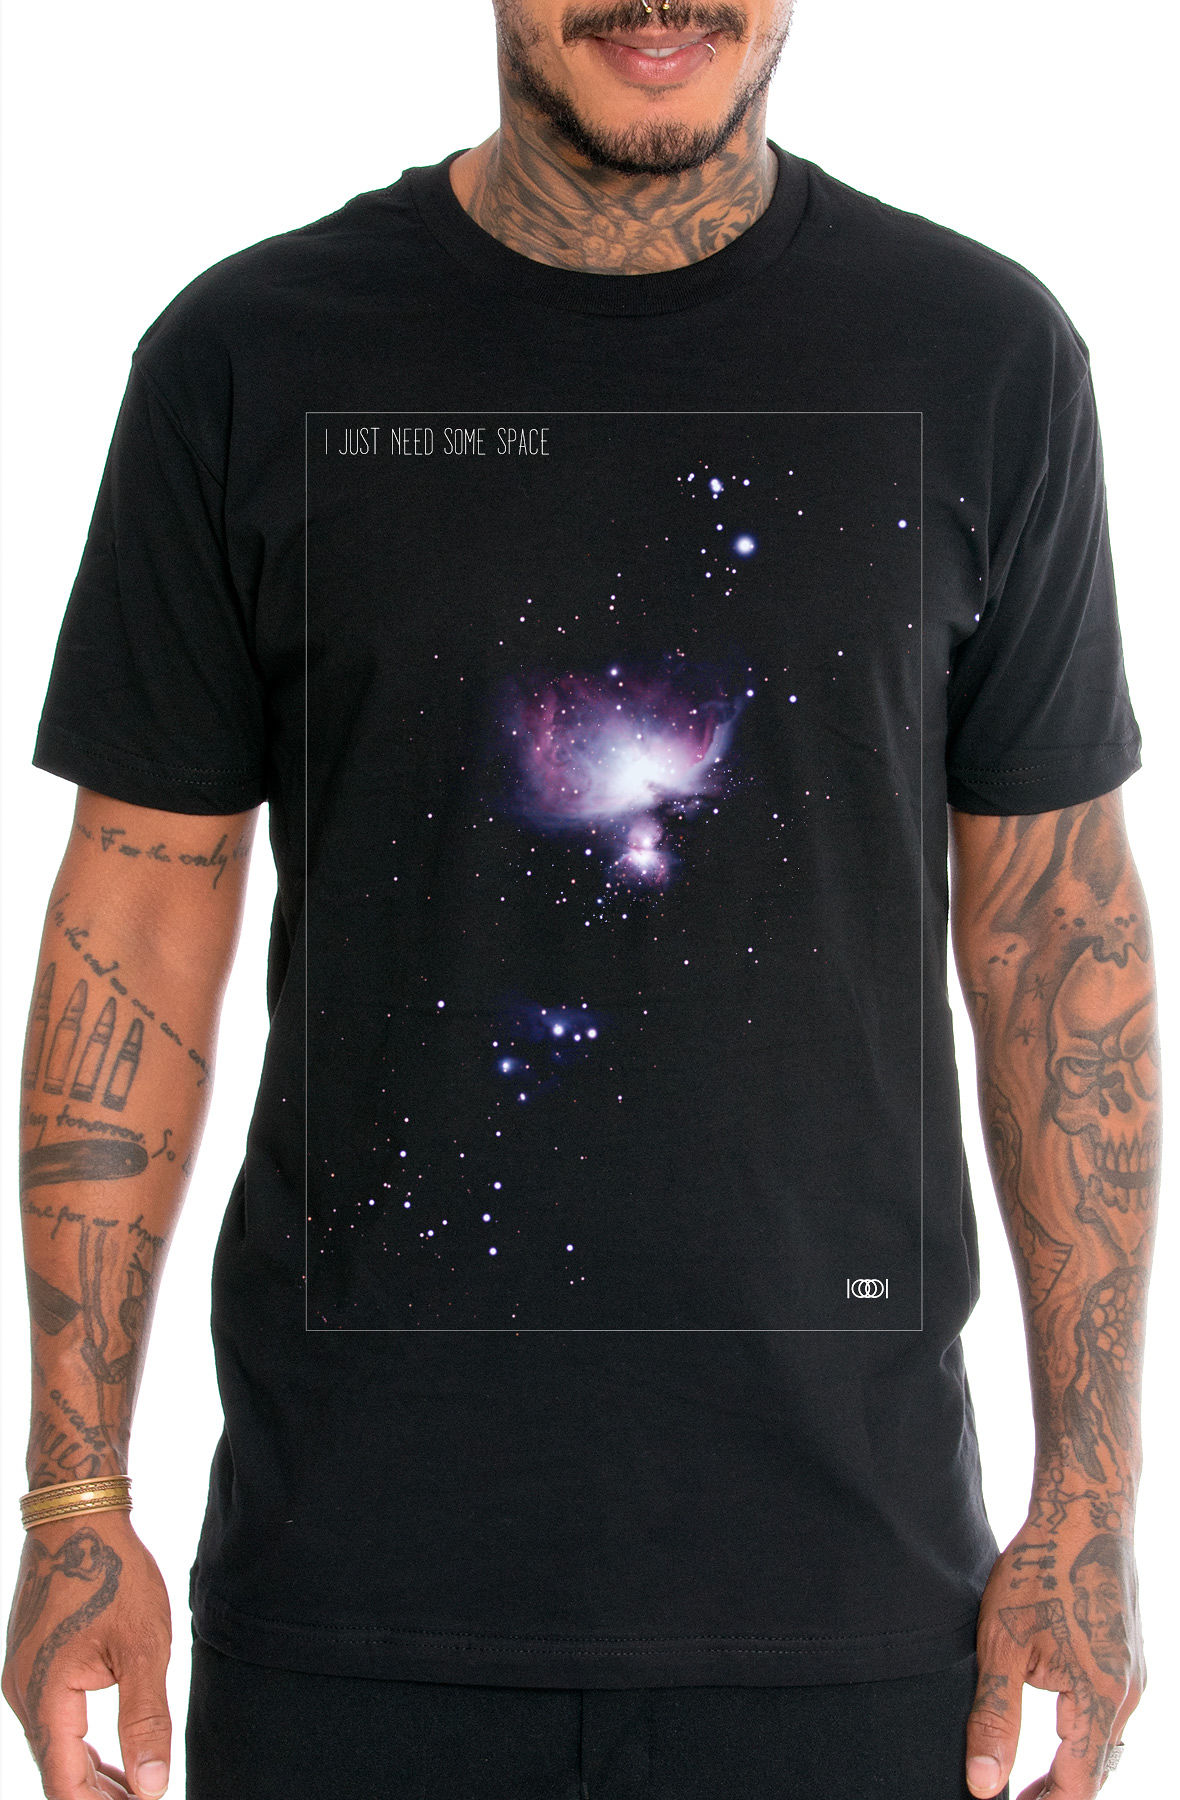 The Some Space Tee